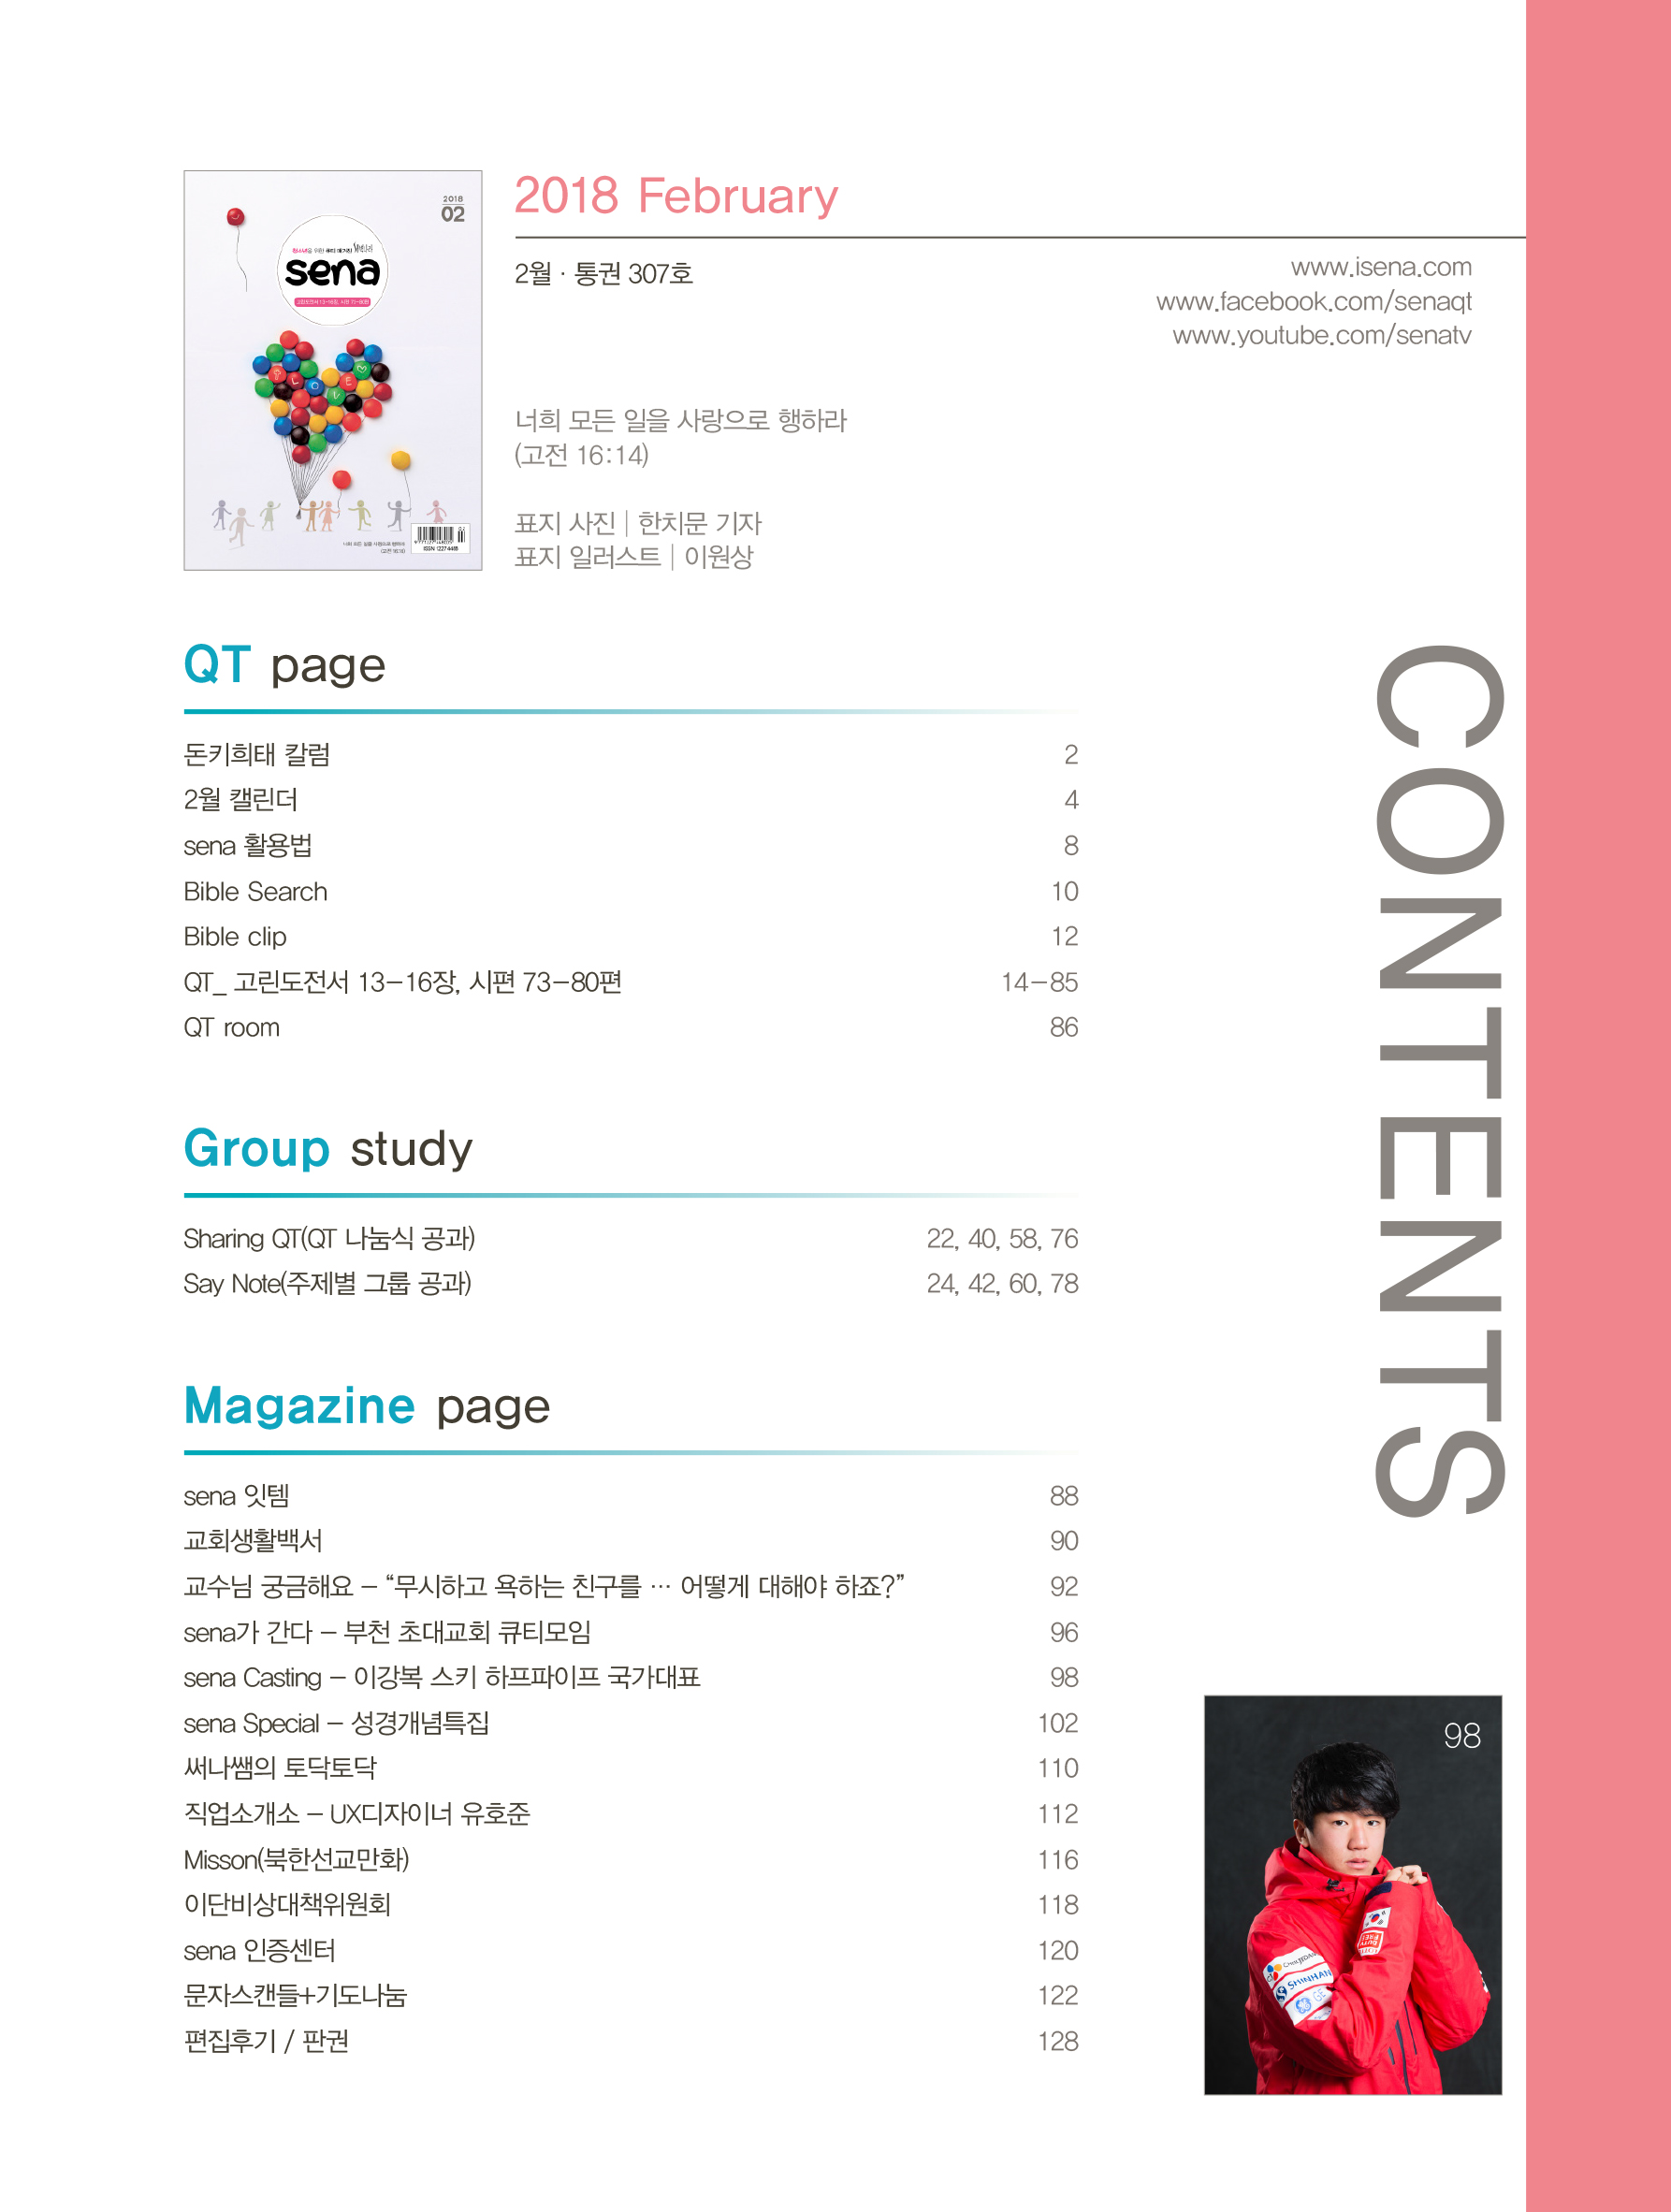 201802 contents